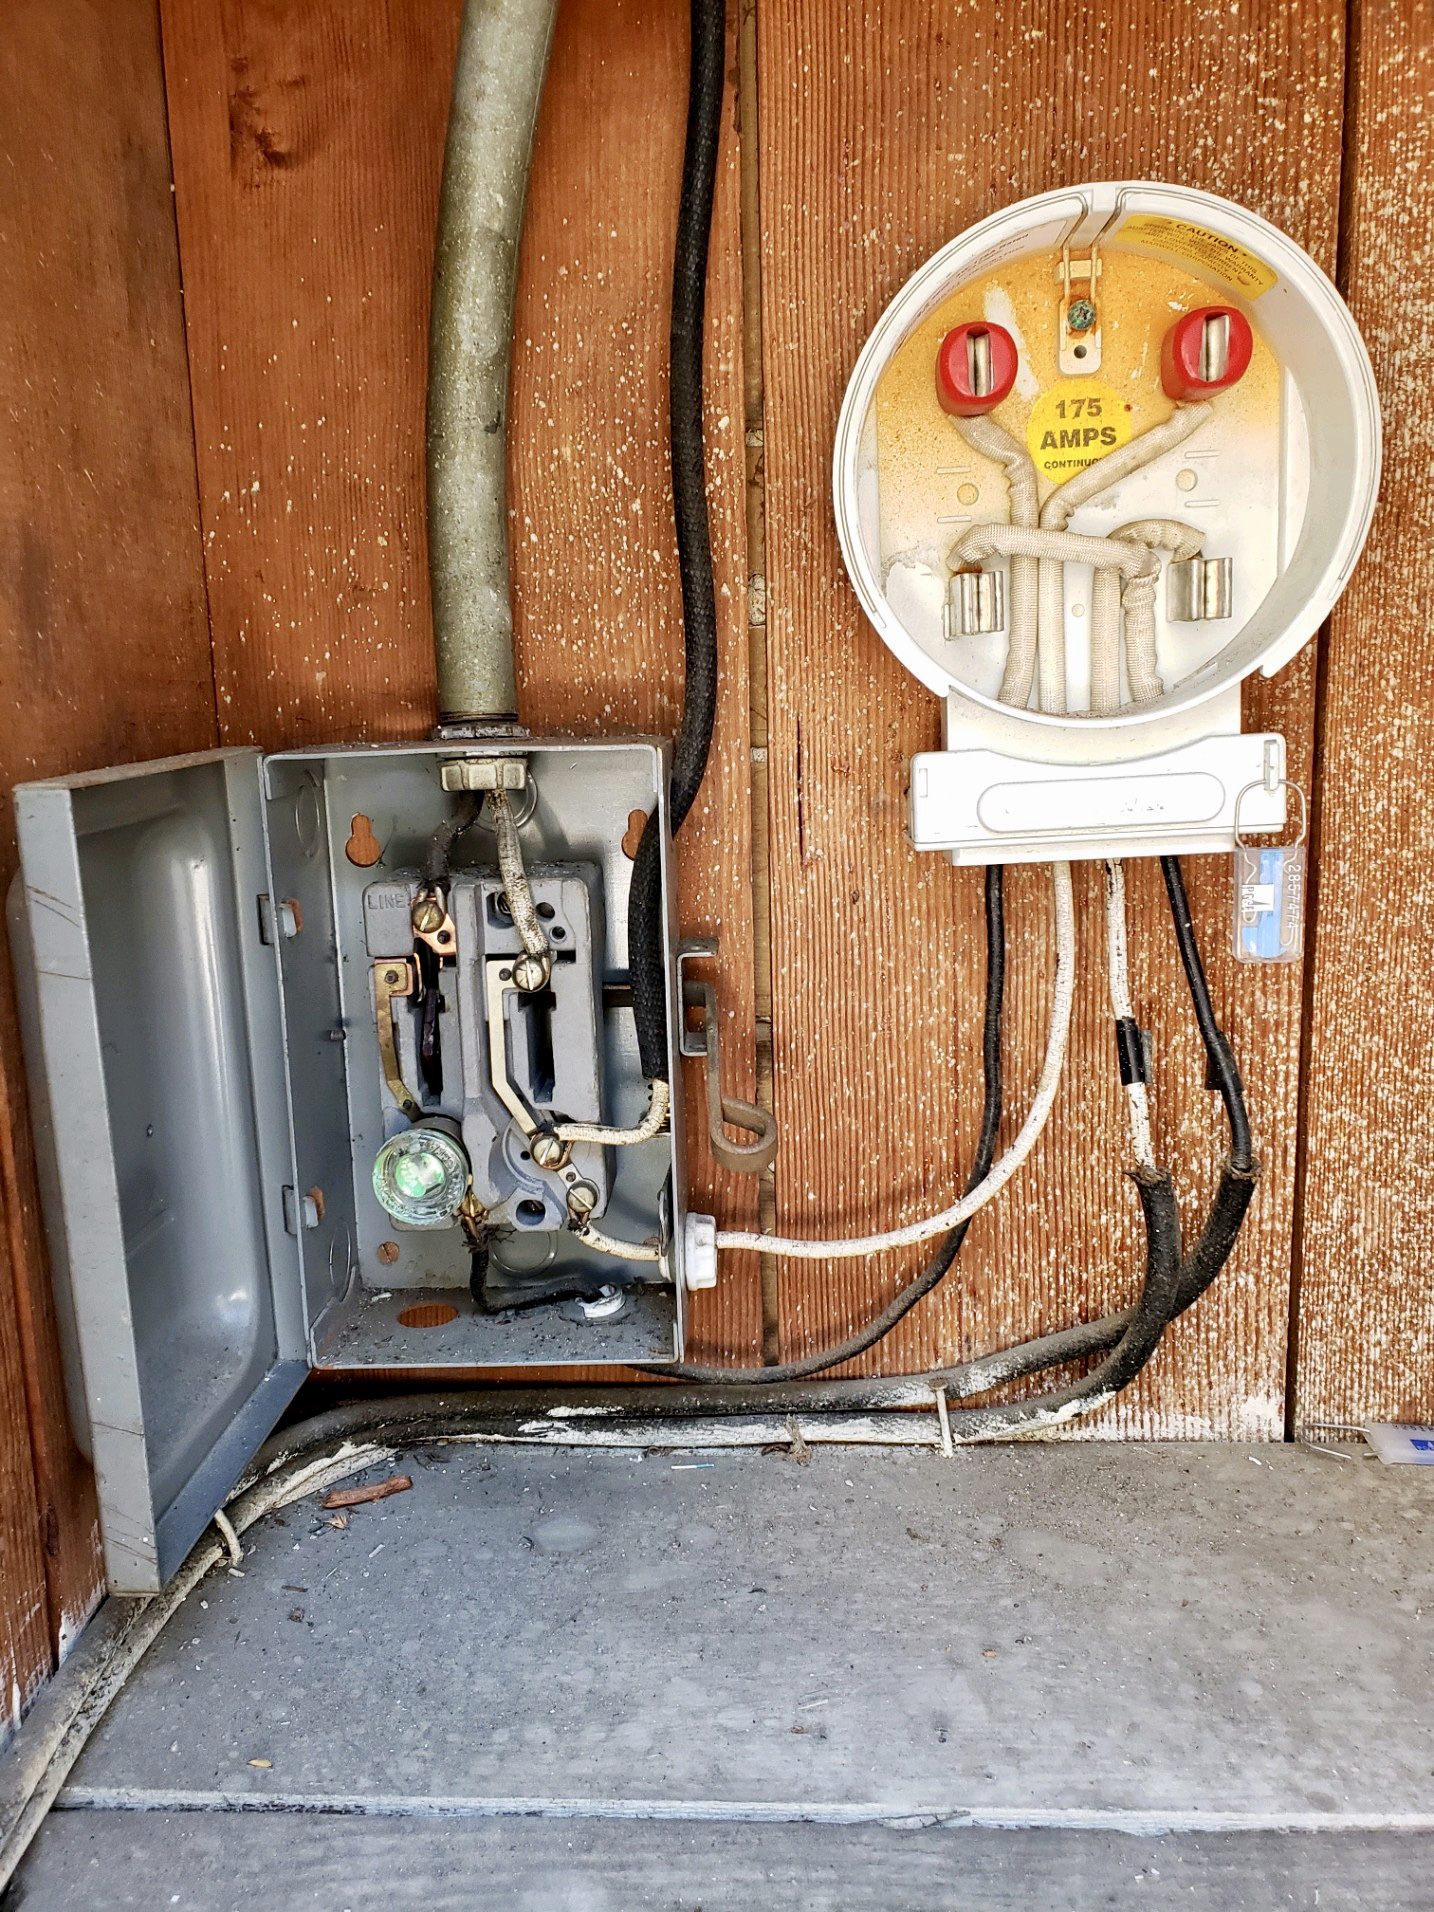 When was the last time you had a routine maintenance check on your electrical system? Regular and thorough maintenance is essential for the safety of your home. It can help prevent fires, and keep energy consumption running smoothly. Give us a call to schedule an appointment!